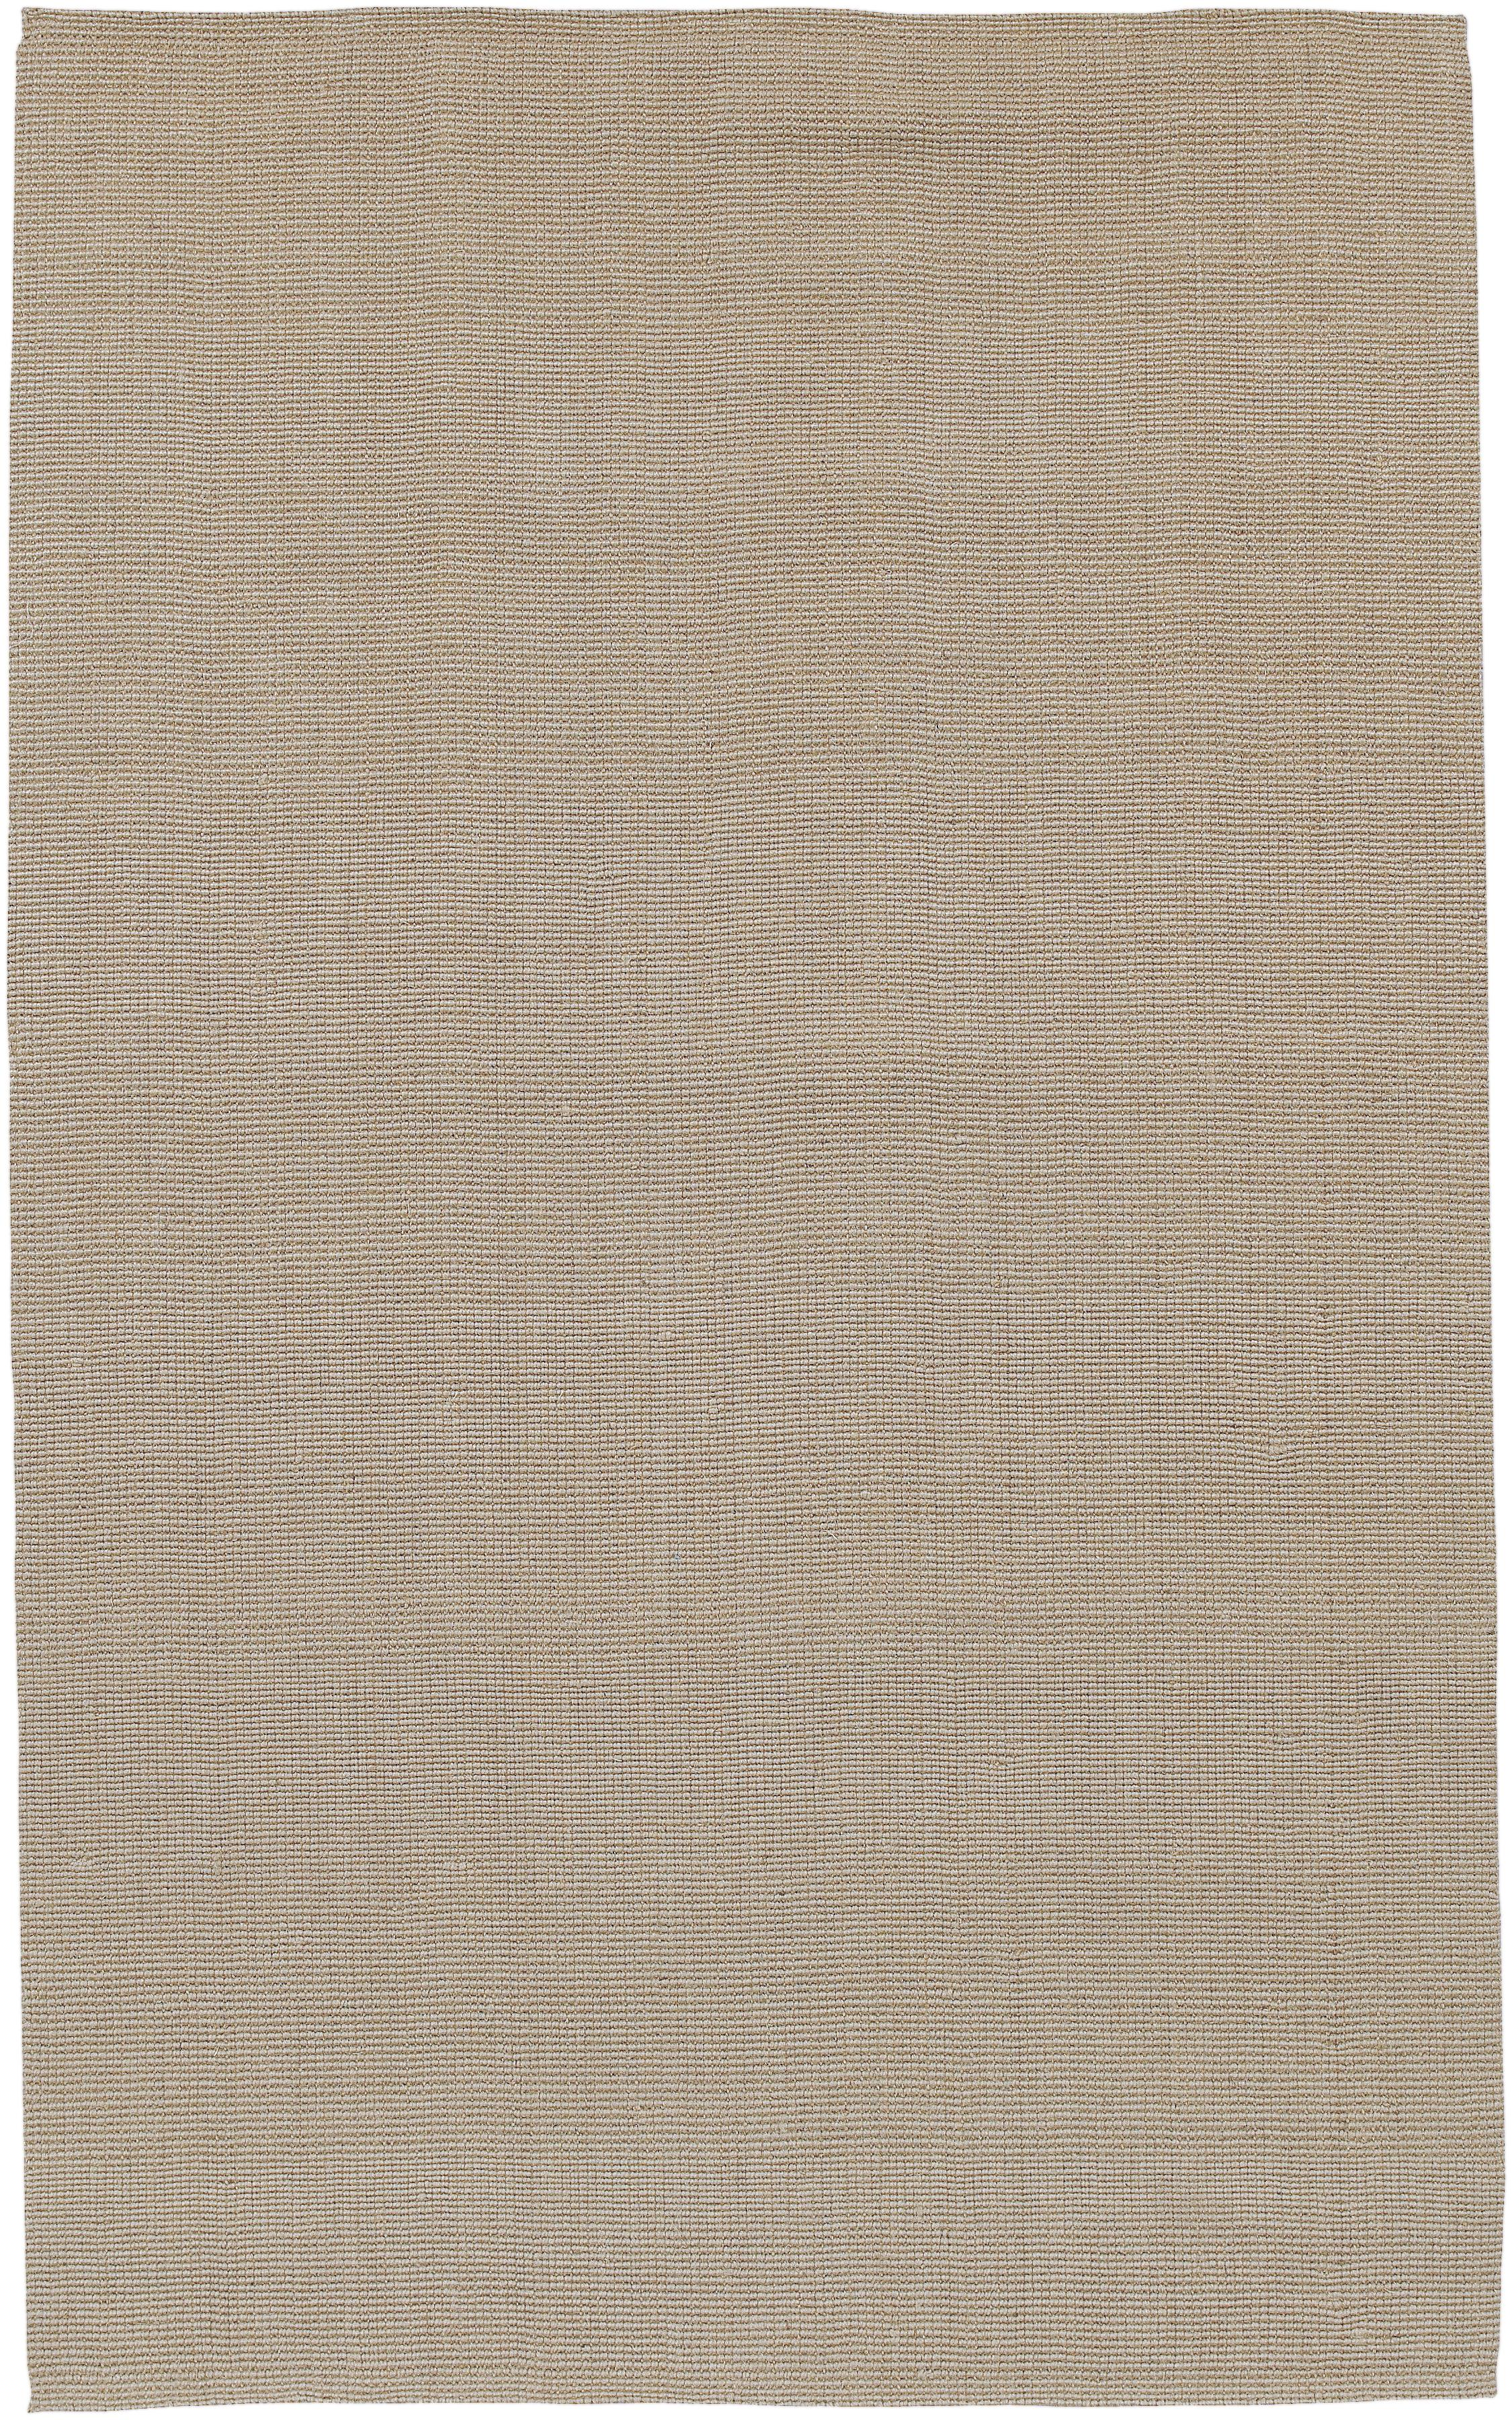 Surya Rugs Jute Woven 9' x 13' - Item Number: JS13-913